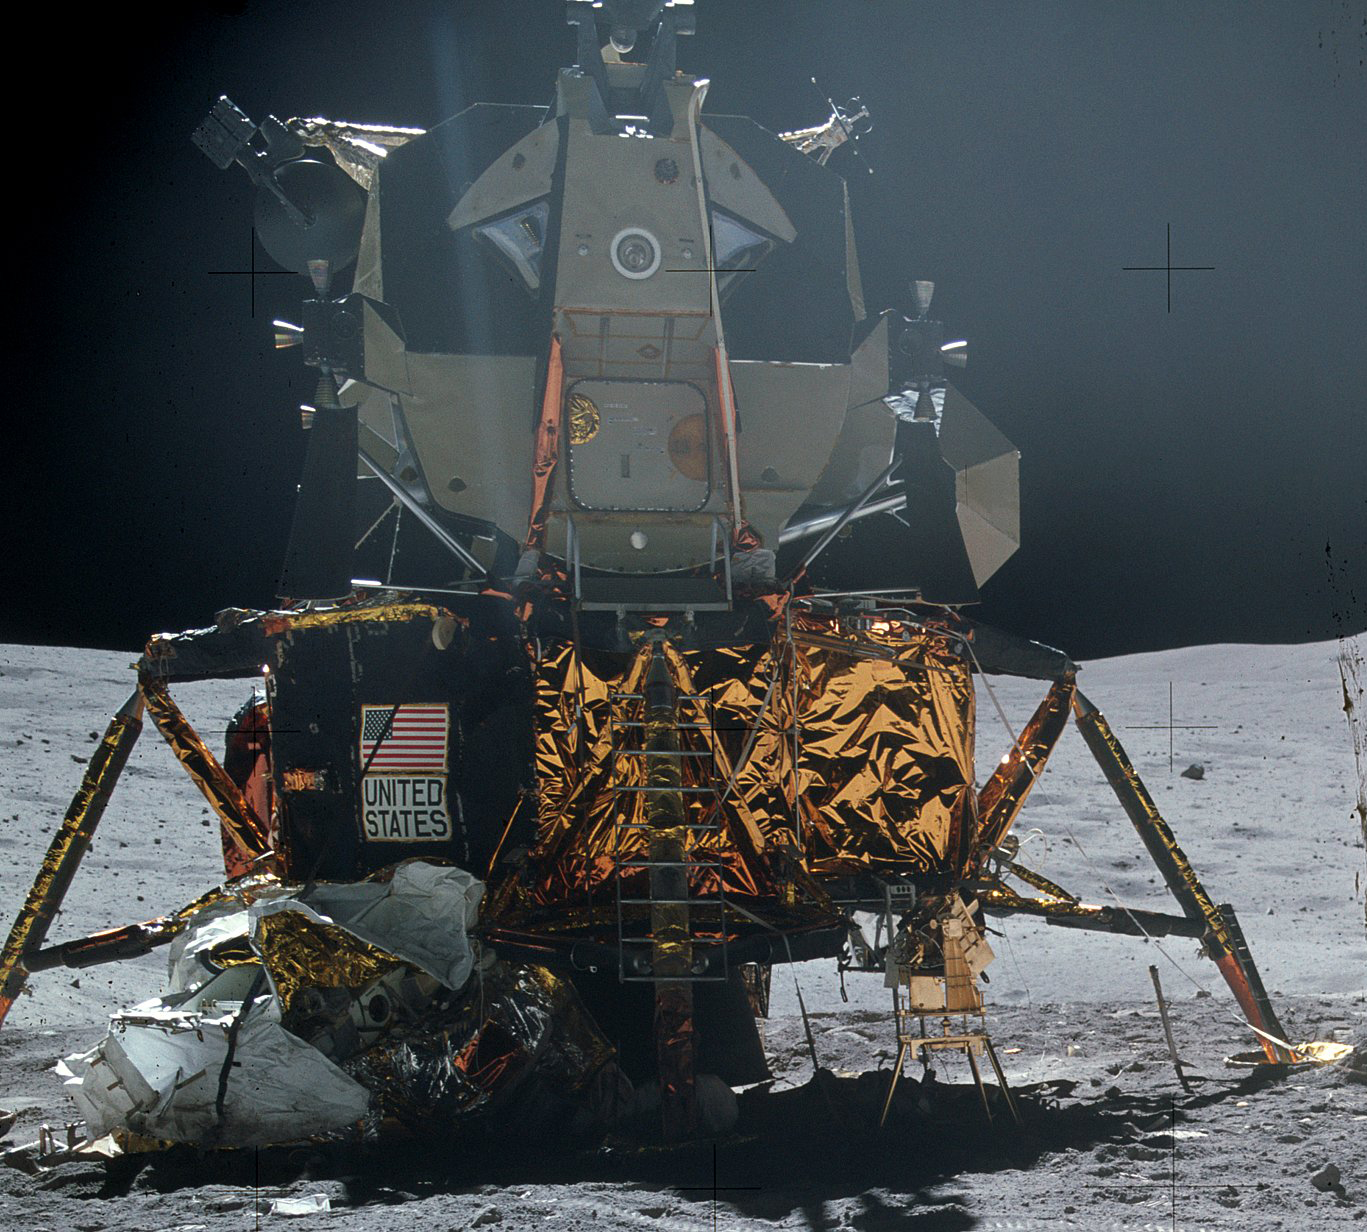 apollo 14 lunar module - photo #20